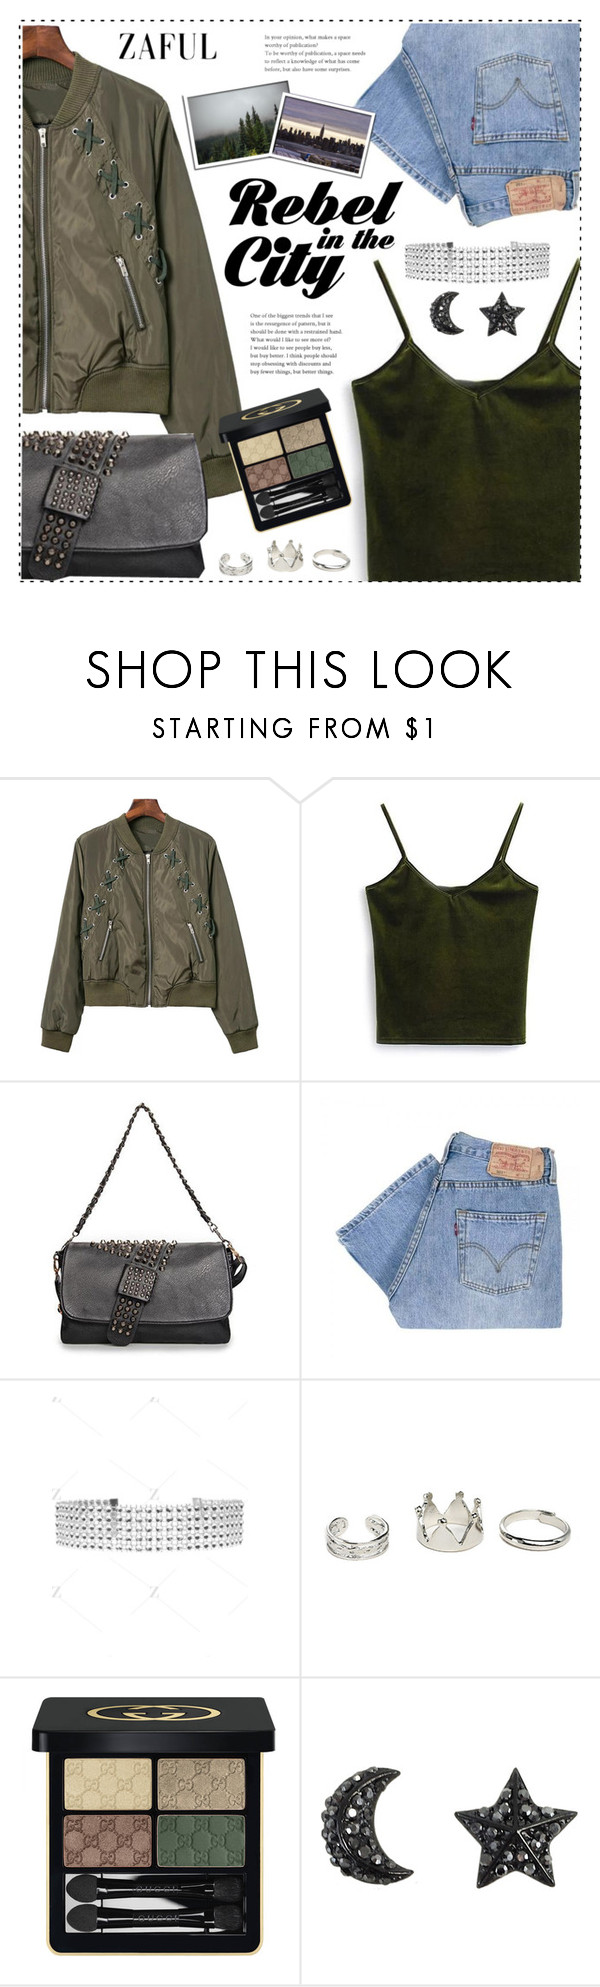 """Green jacket"" by duma-duma ❤ liked on Polyvore featuring Levi's and Gucci"